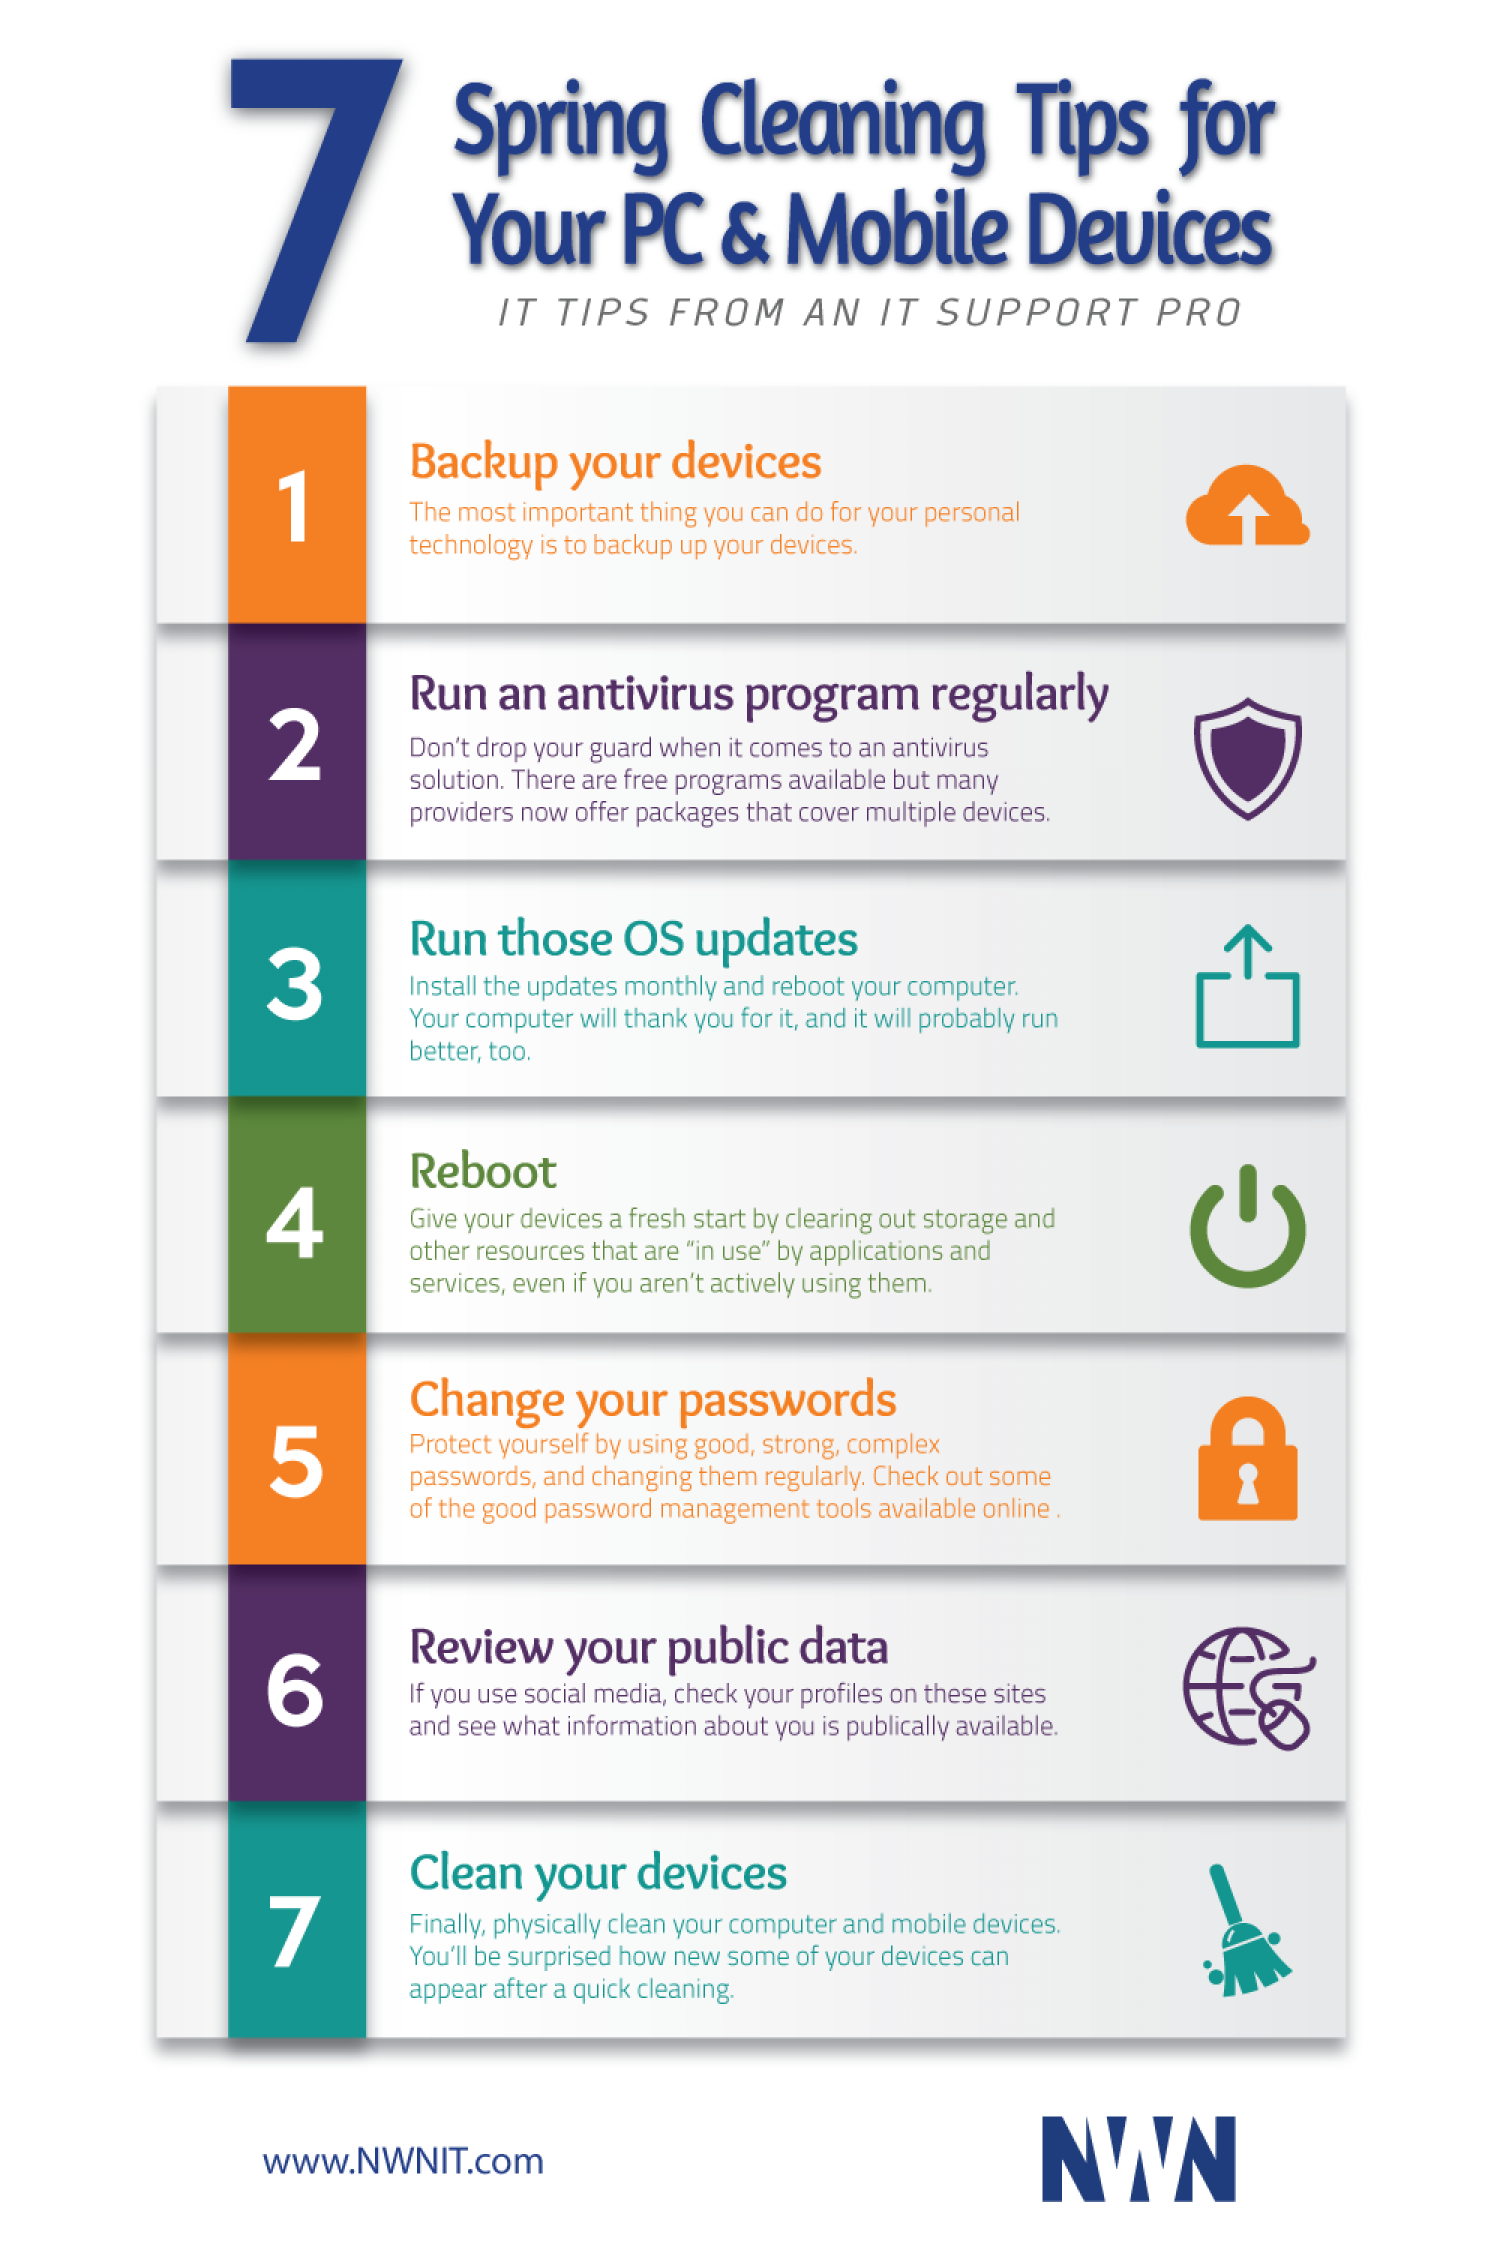 7 Spring Cleaning Tips for Your PC & Mobile Devices Infographic